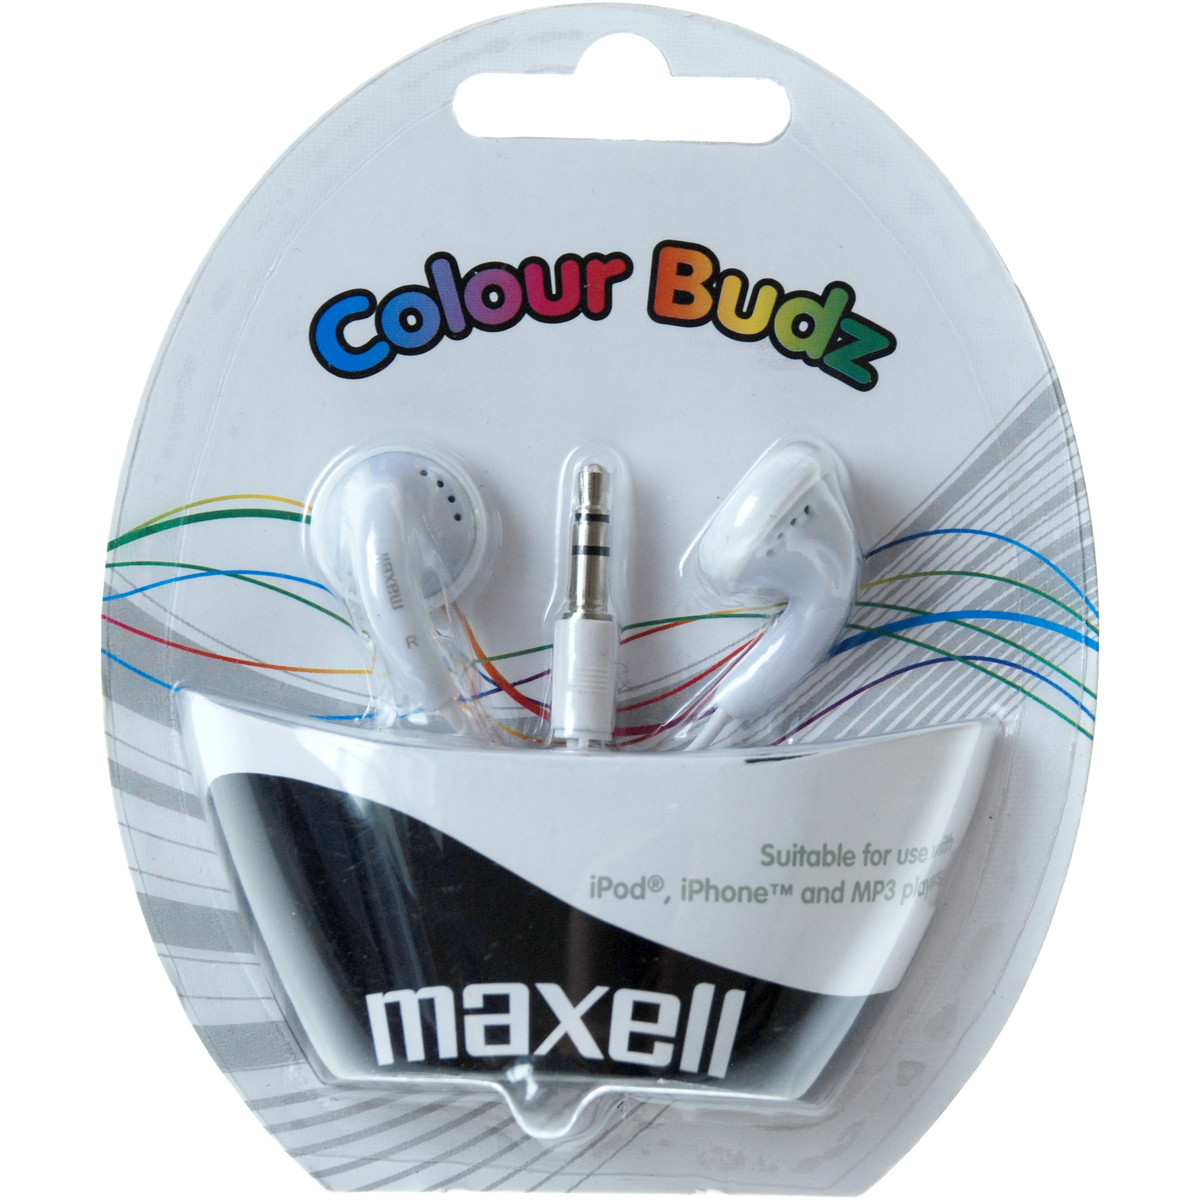 Casti Casca in ureche 3.5mm alb Color Budz Maxell